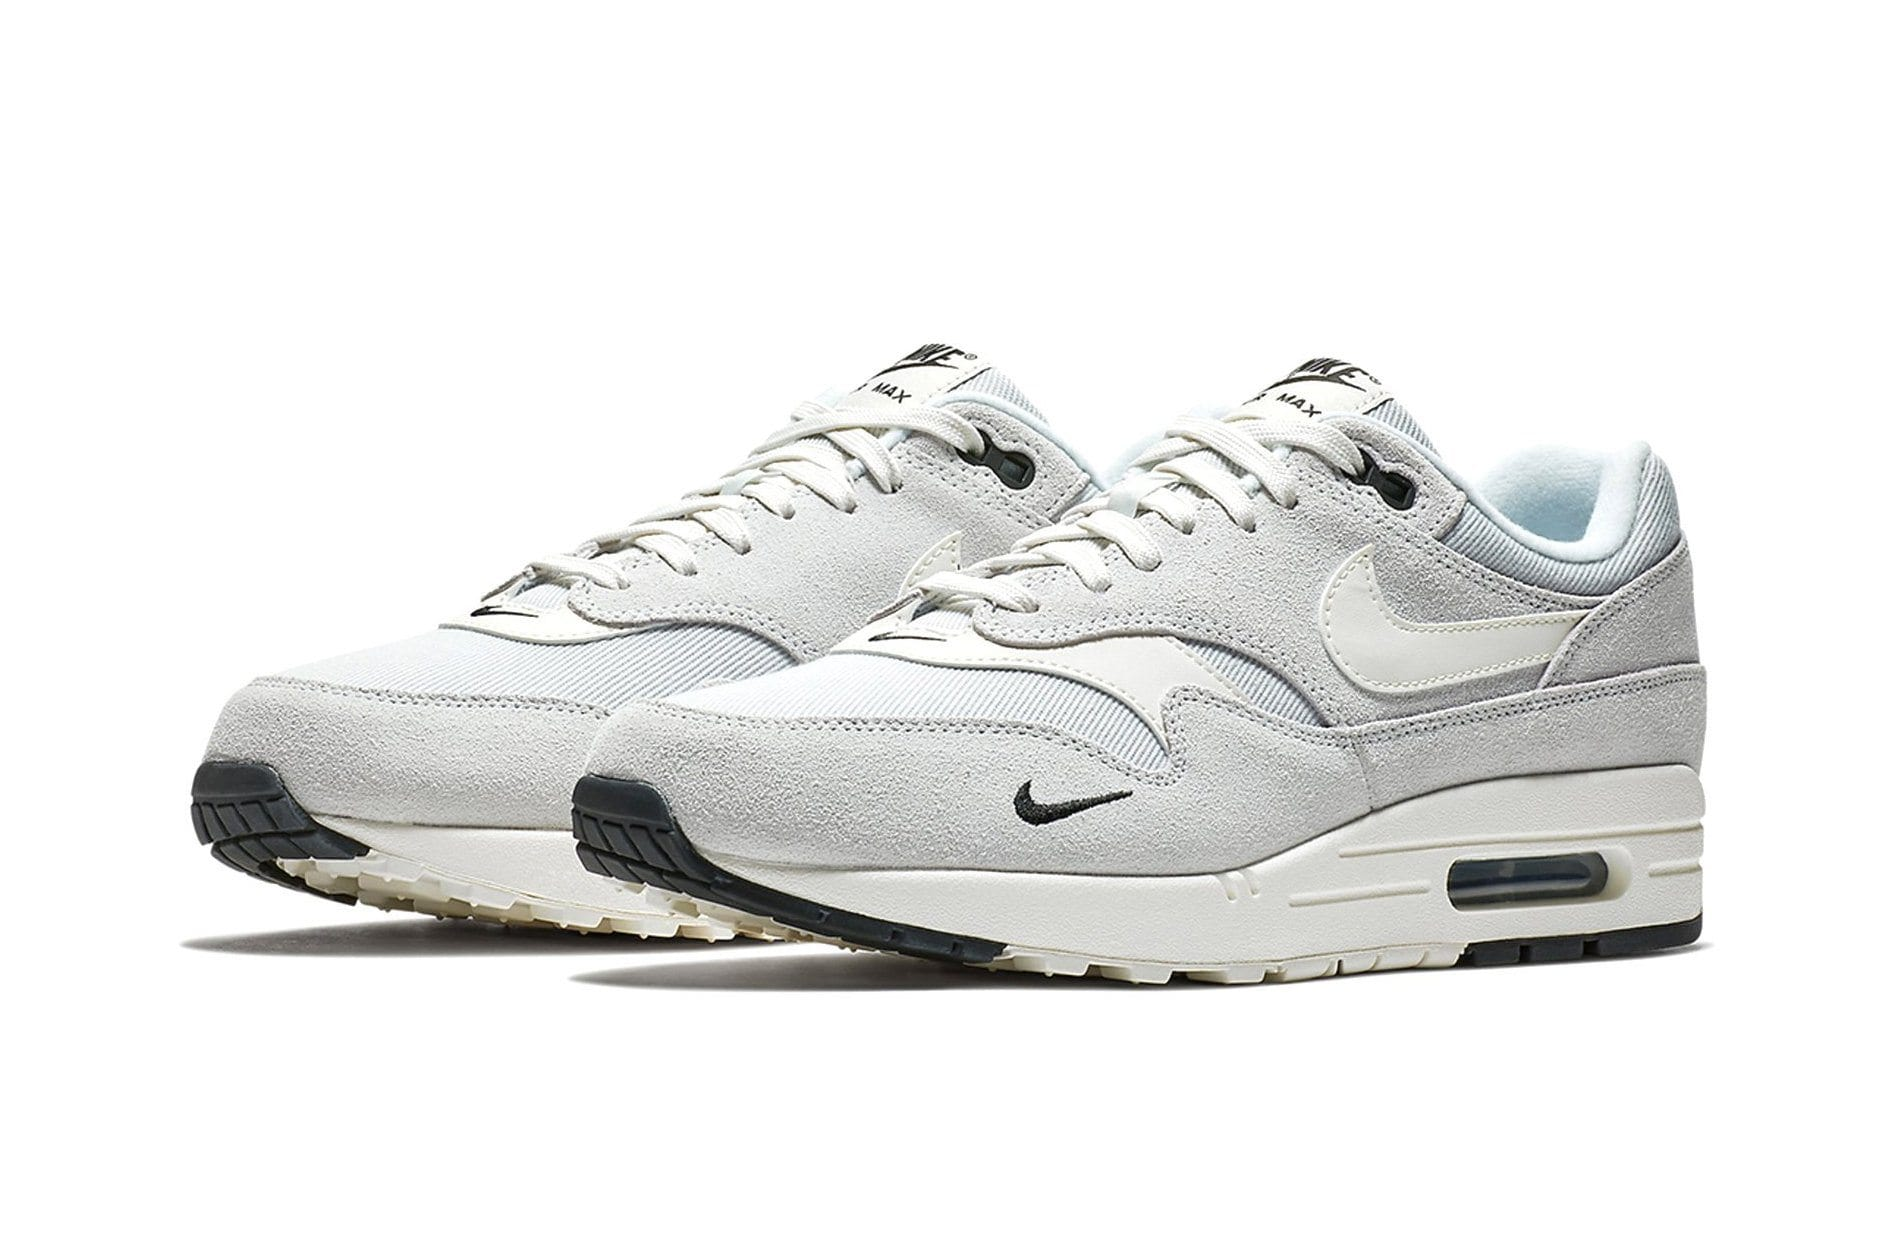 outlet store 8a399 5dbd4 AIR MAX 1 PREMIUM SHOE-875844-006 MENS FOOTWEAR NIKE